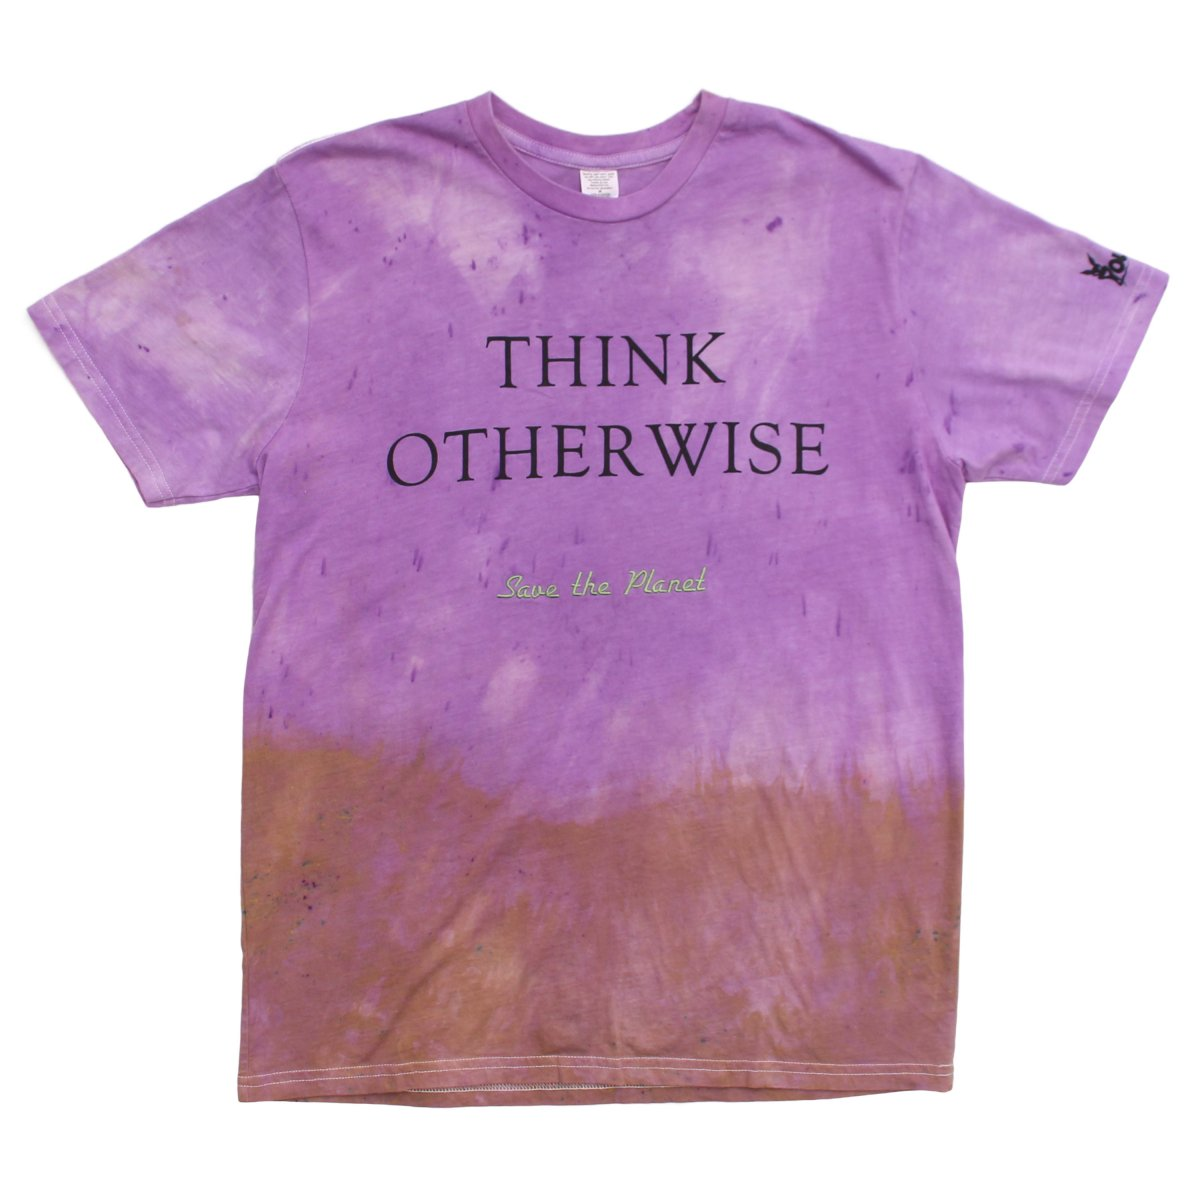 Dyed T-shirt with Embroidery(1 of 1)